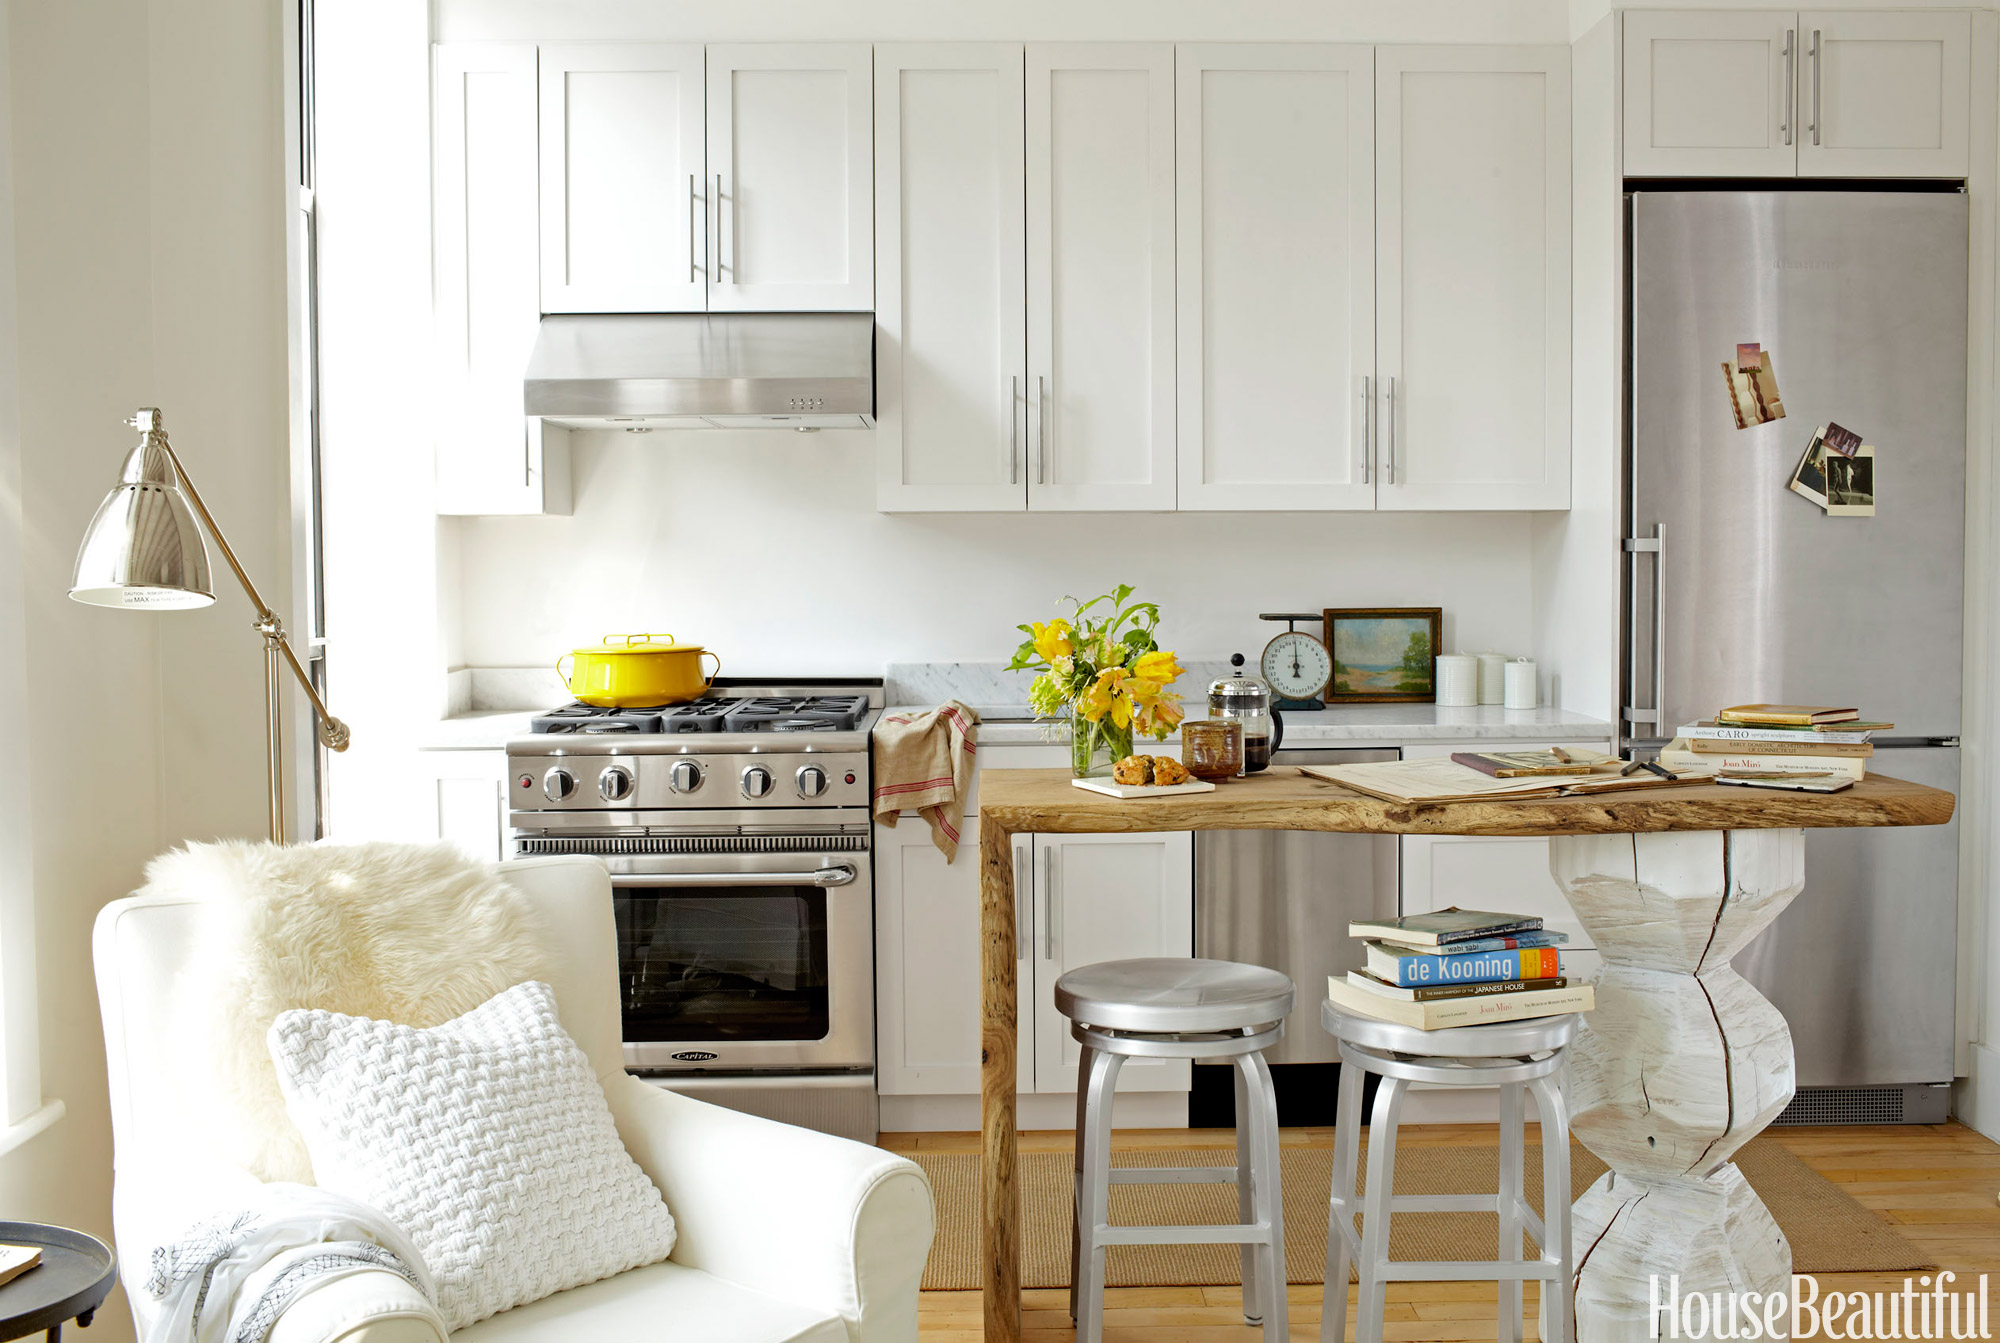 Kitchen Ideas Decorating: 17 Best Small Kitchen Design Ideas